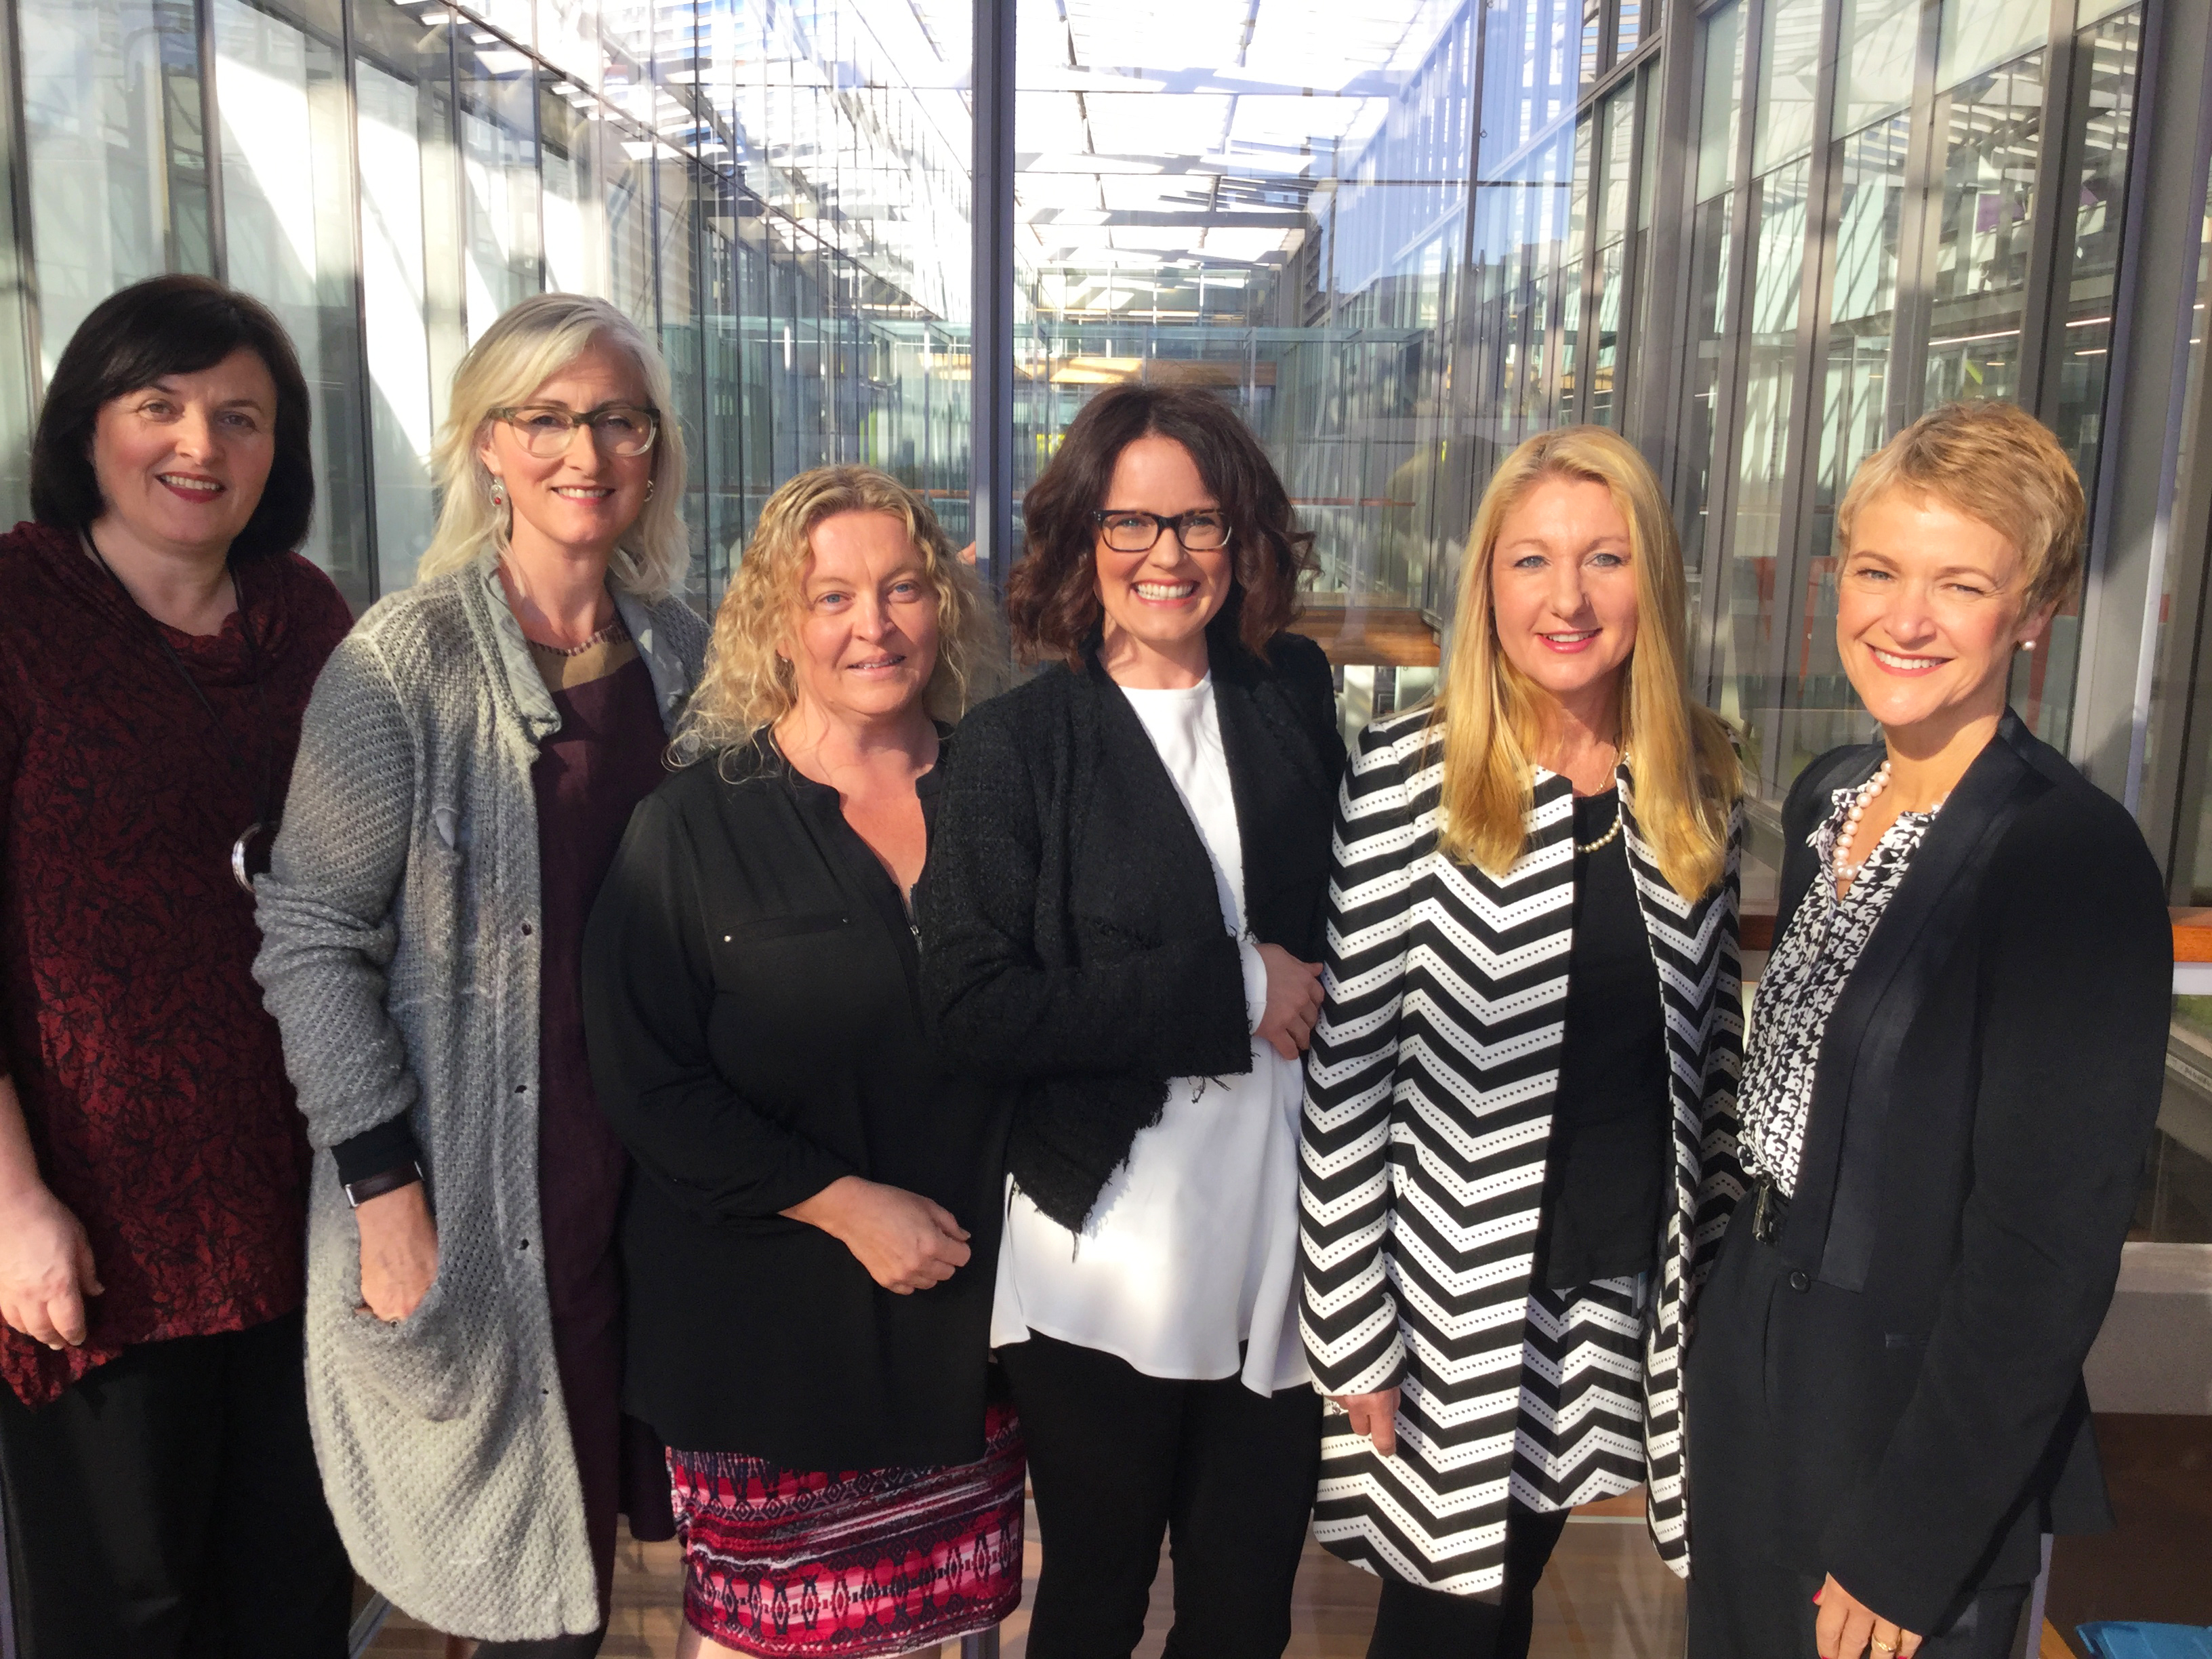 Creativity and innovation in teaching: an interview with the award winning UTS Midwifery team